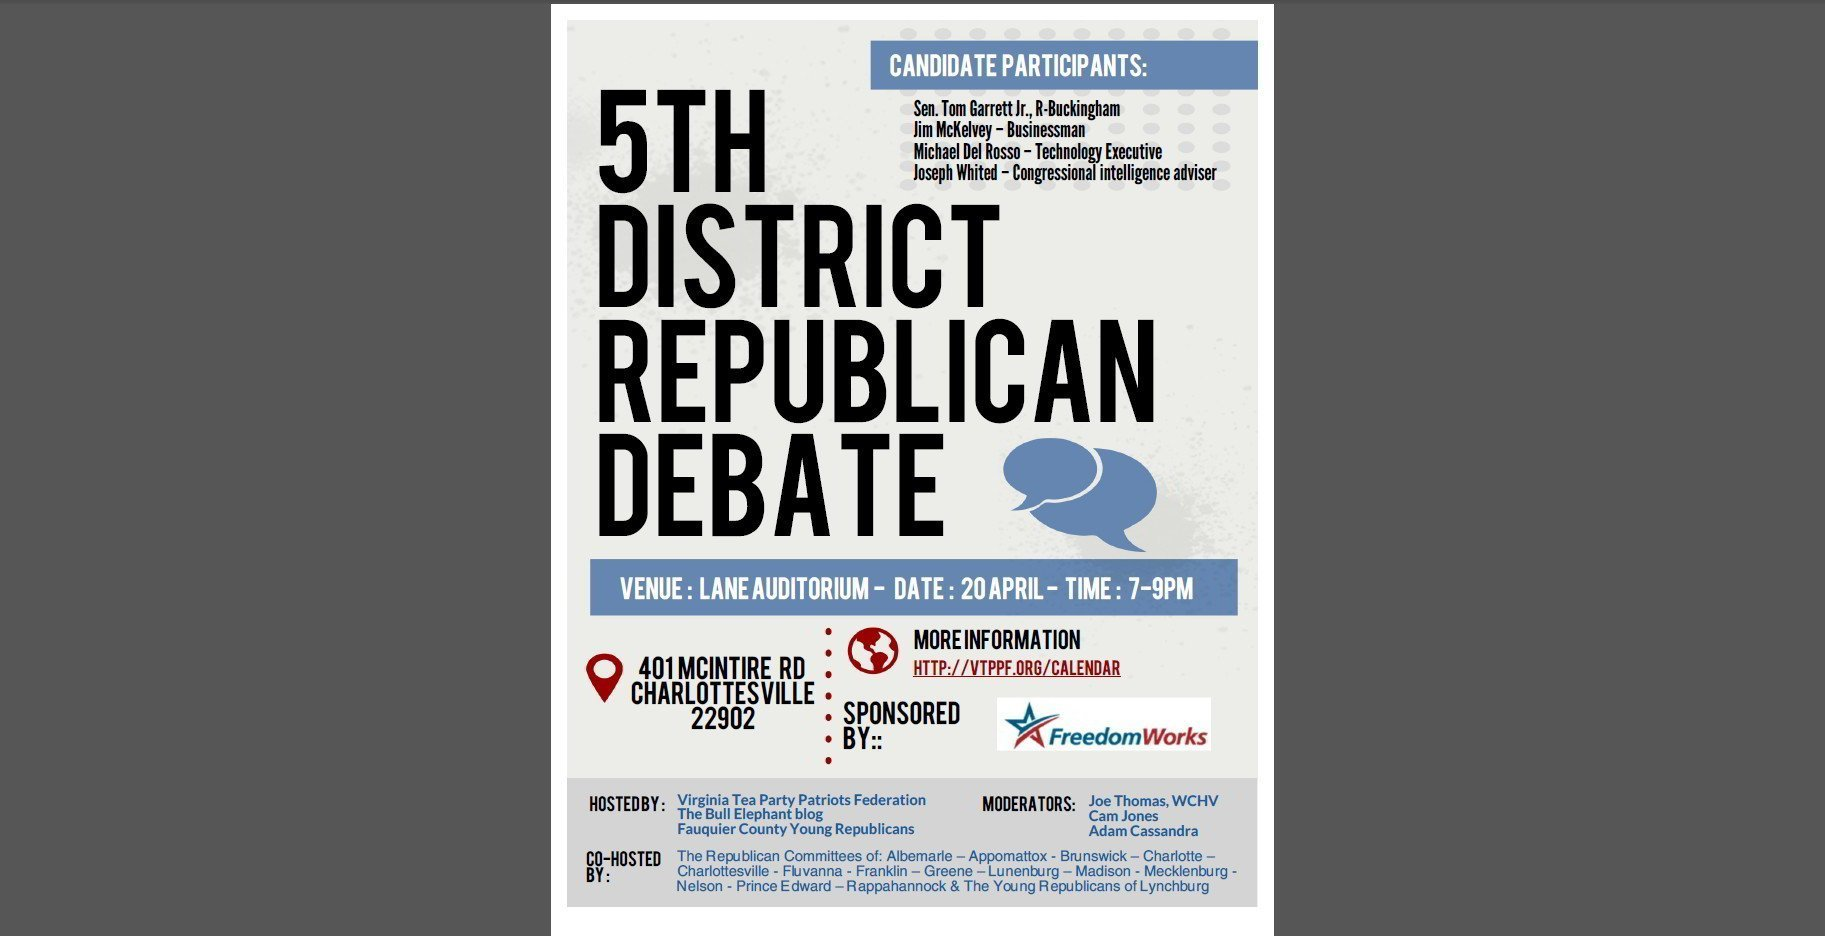 Debate Flyer pic